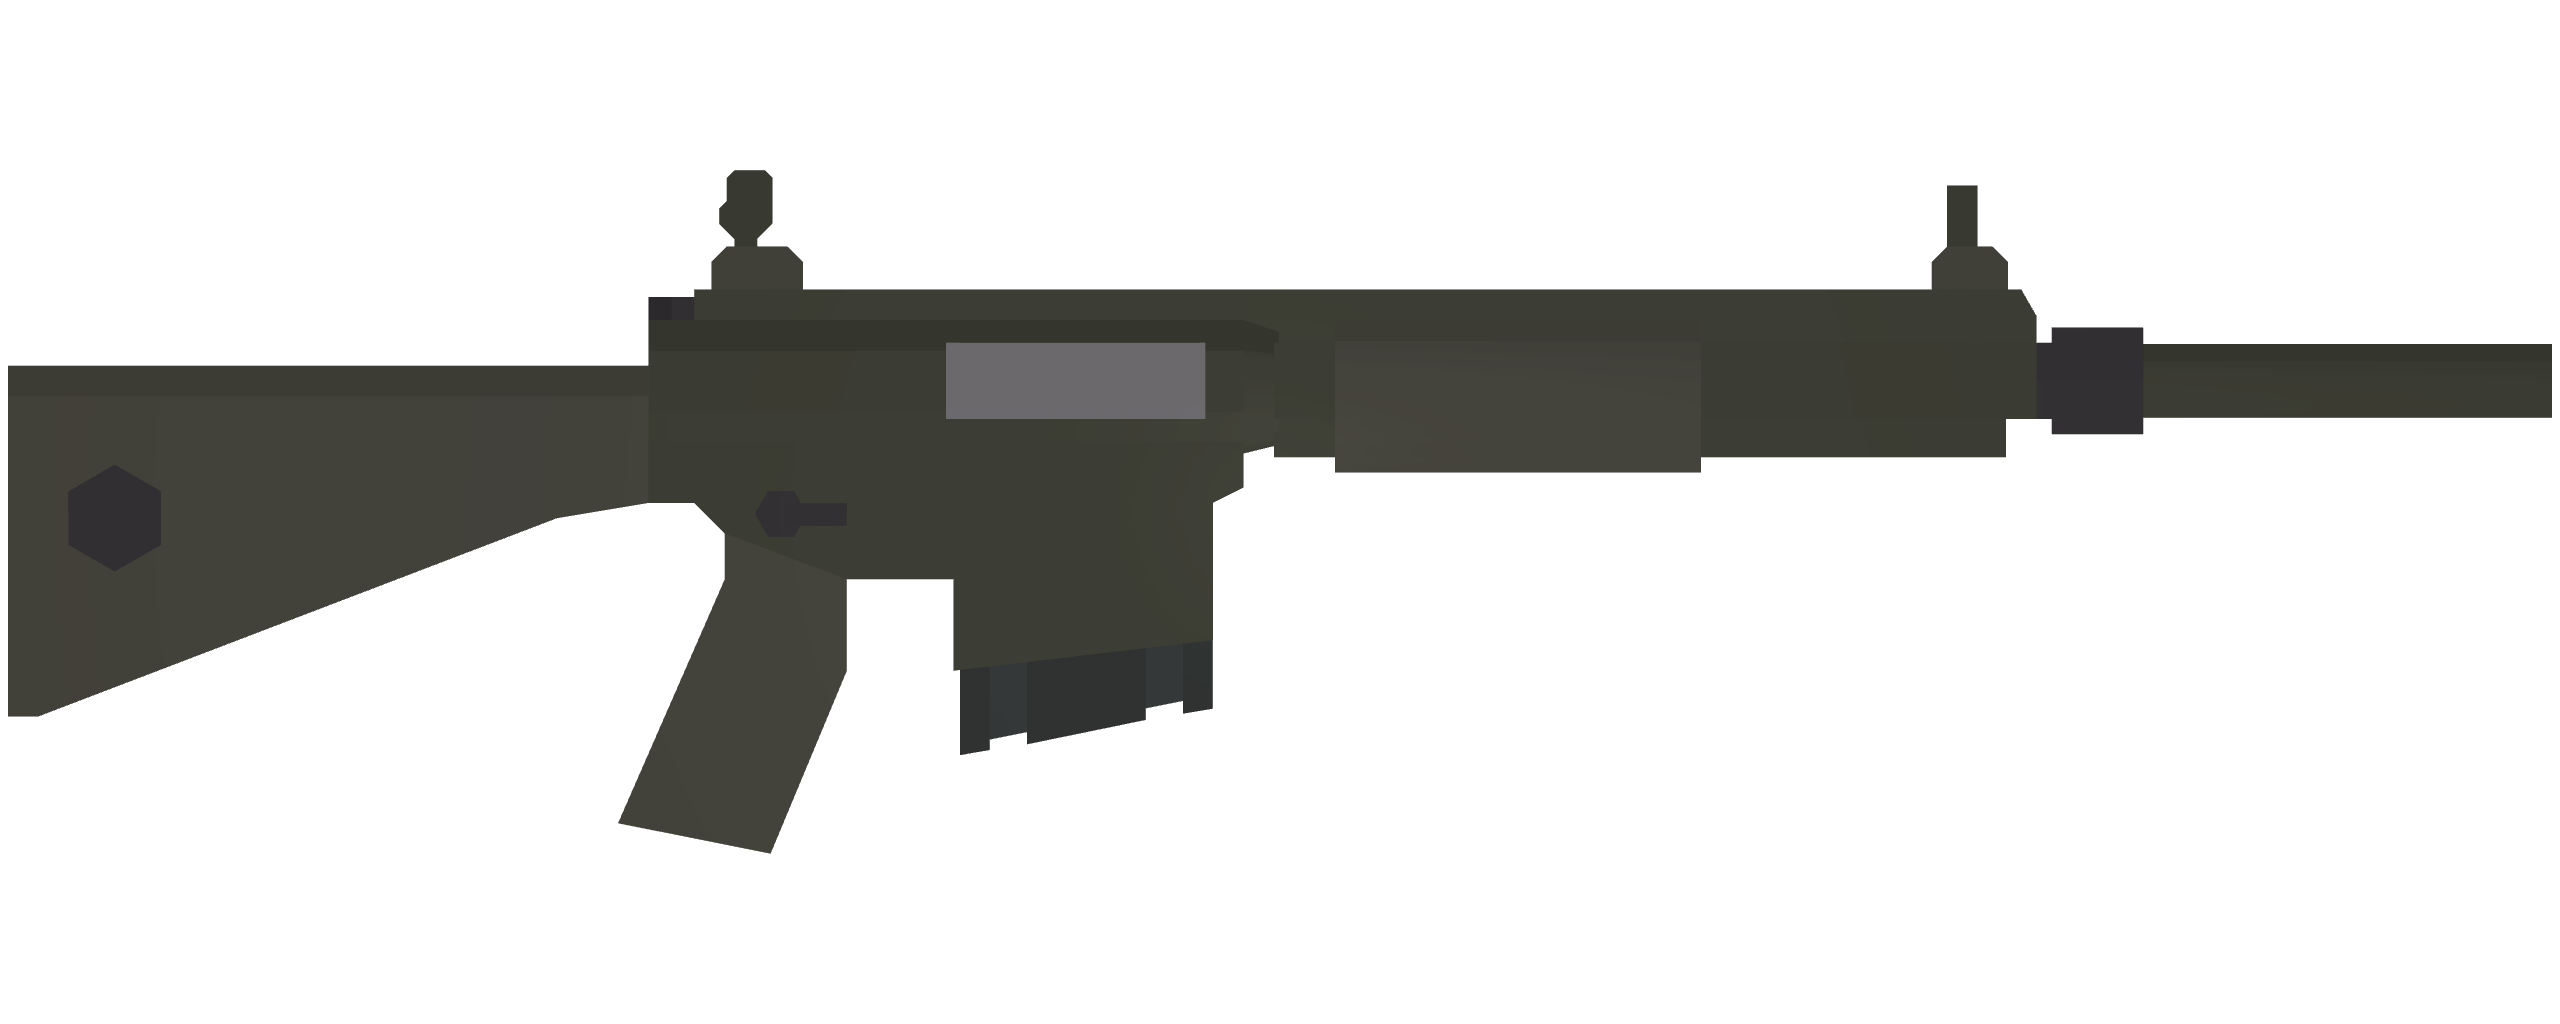 Unturned Uncreated Warfare Mods & All ID List + Attachments - USA Weapons - CB7D085